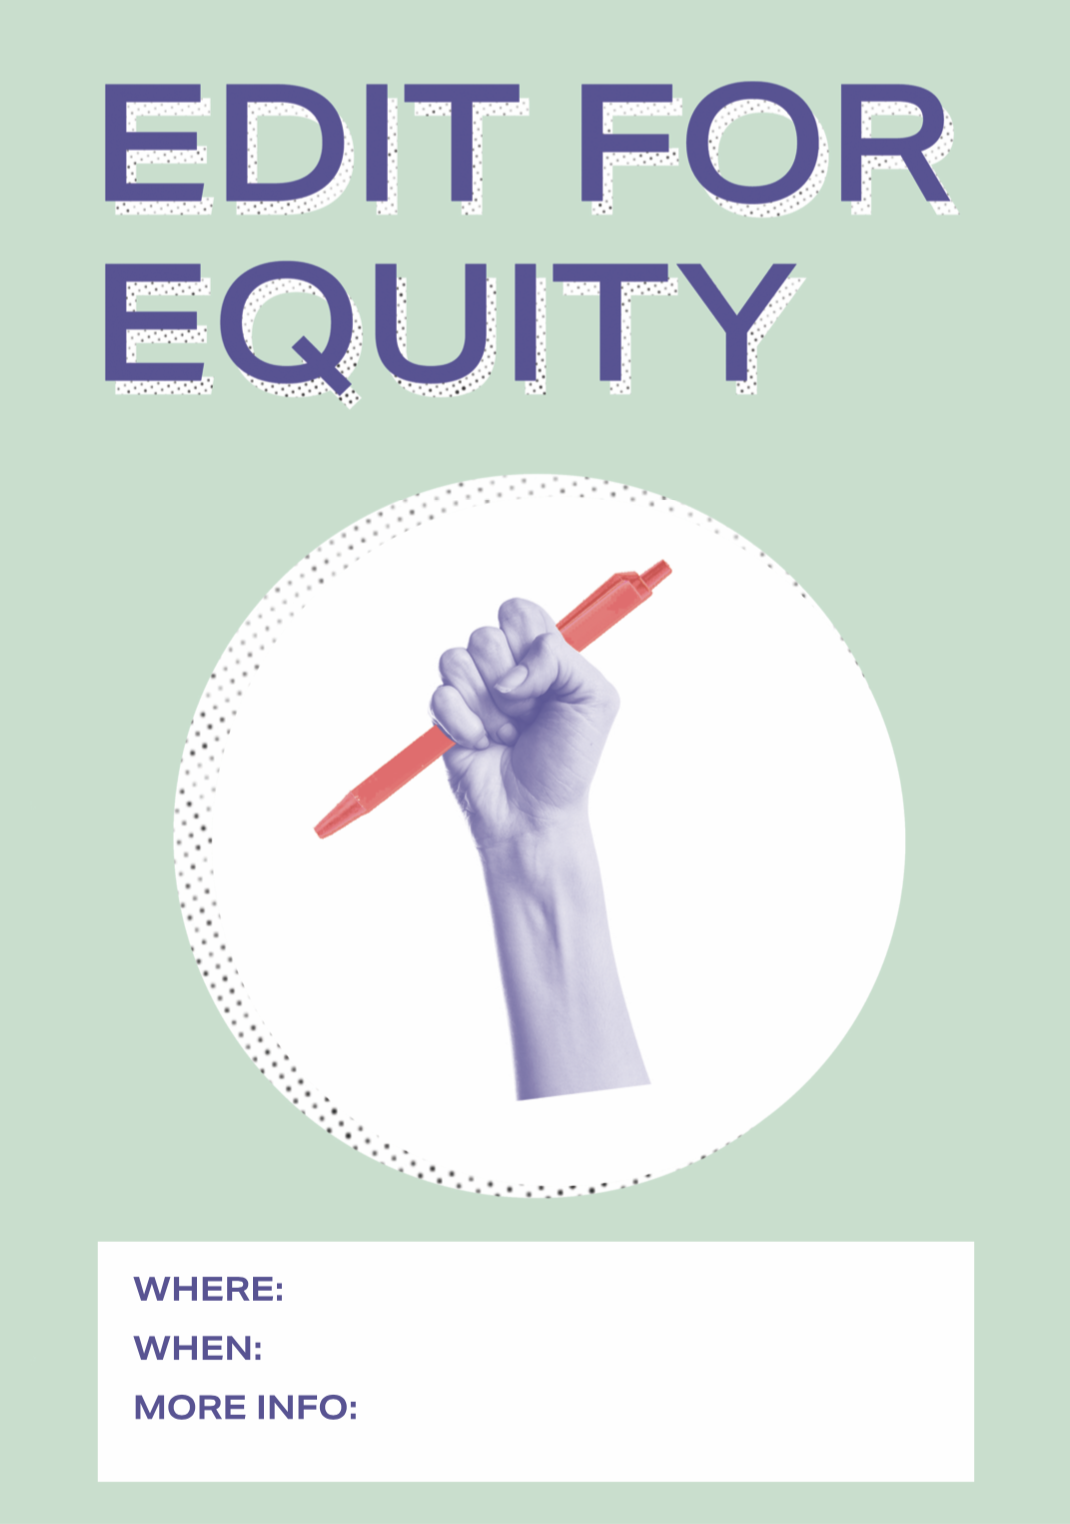 Edit for Equity poster image